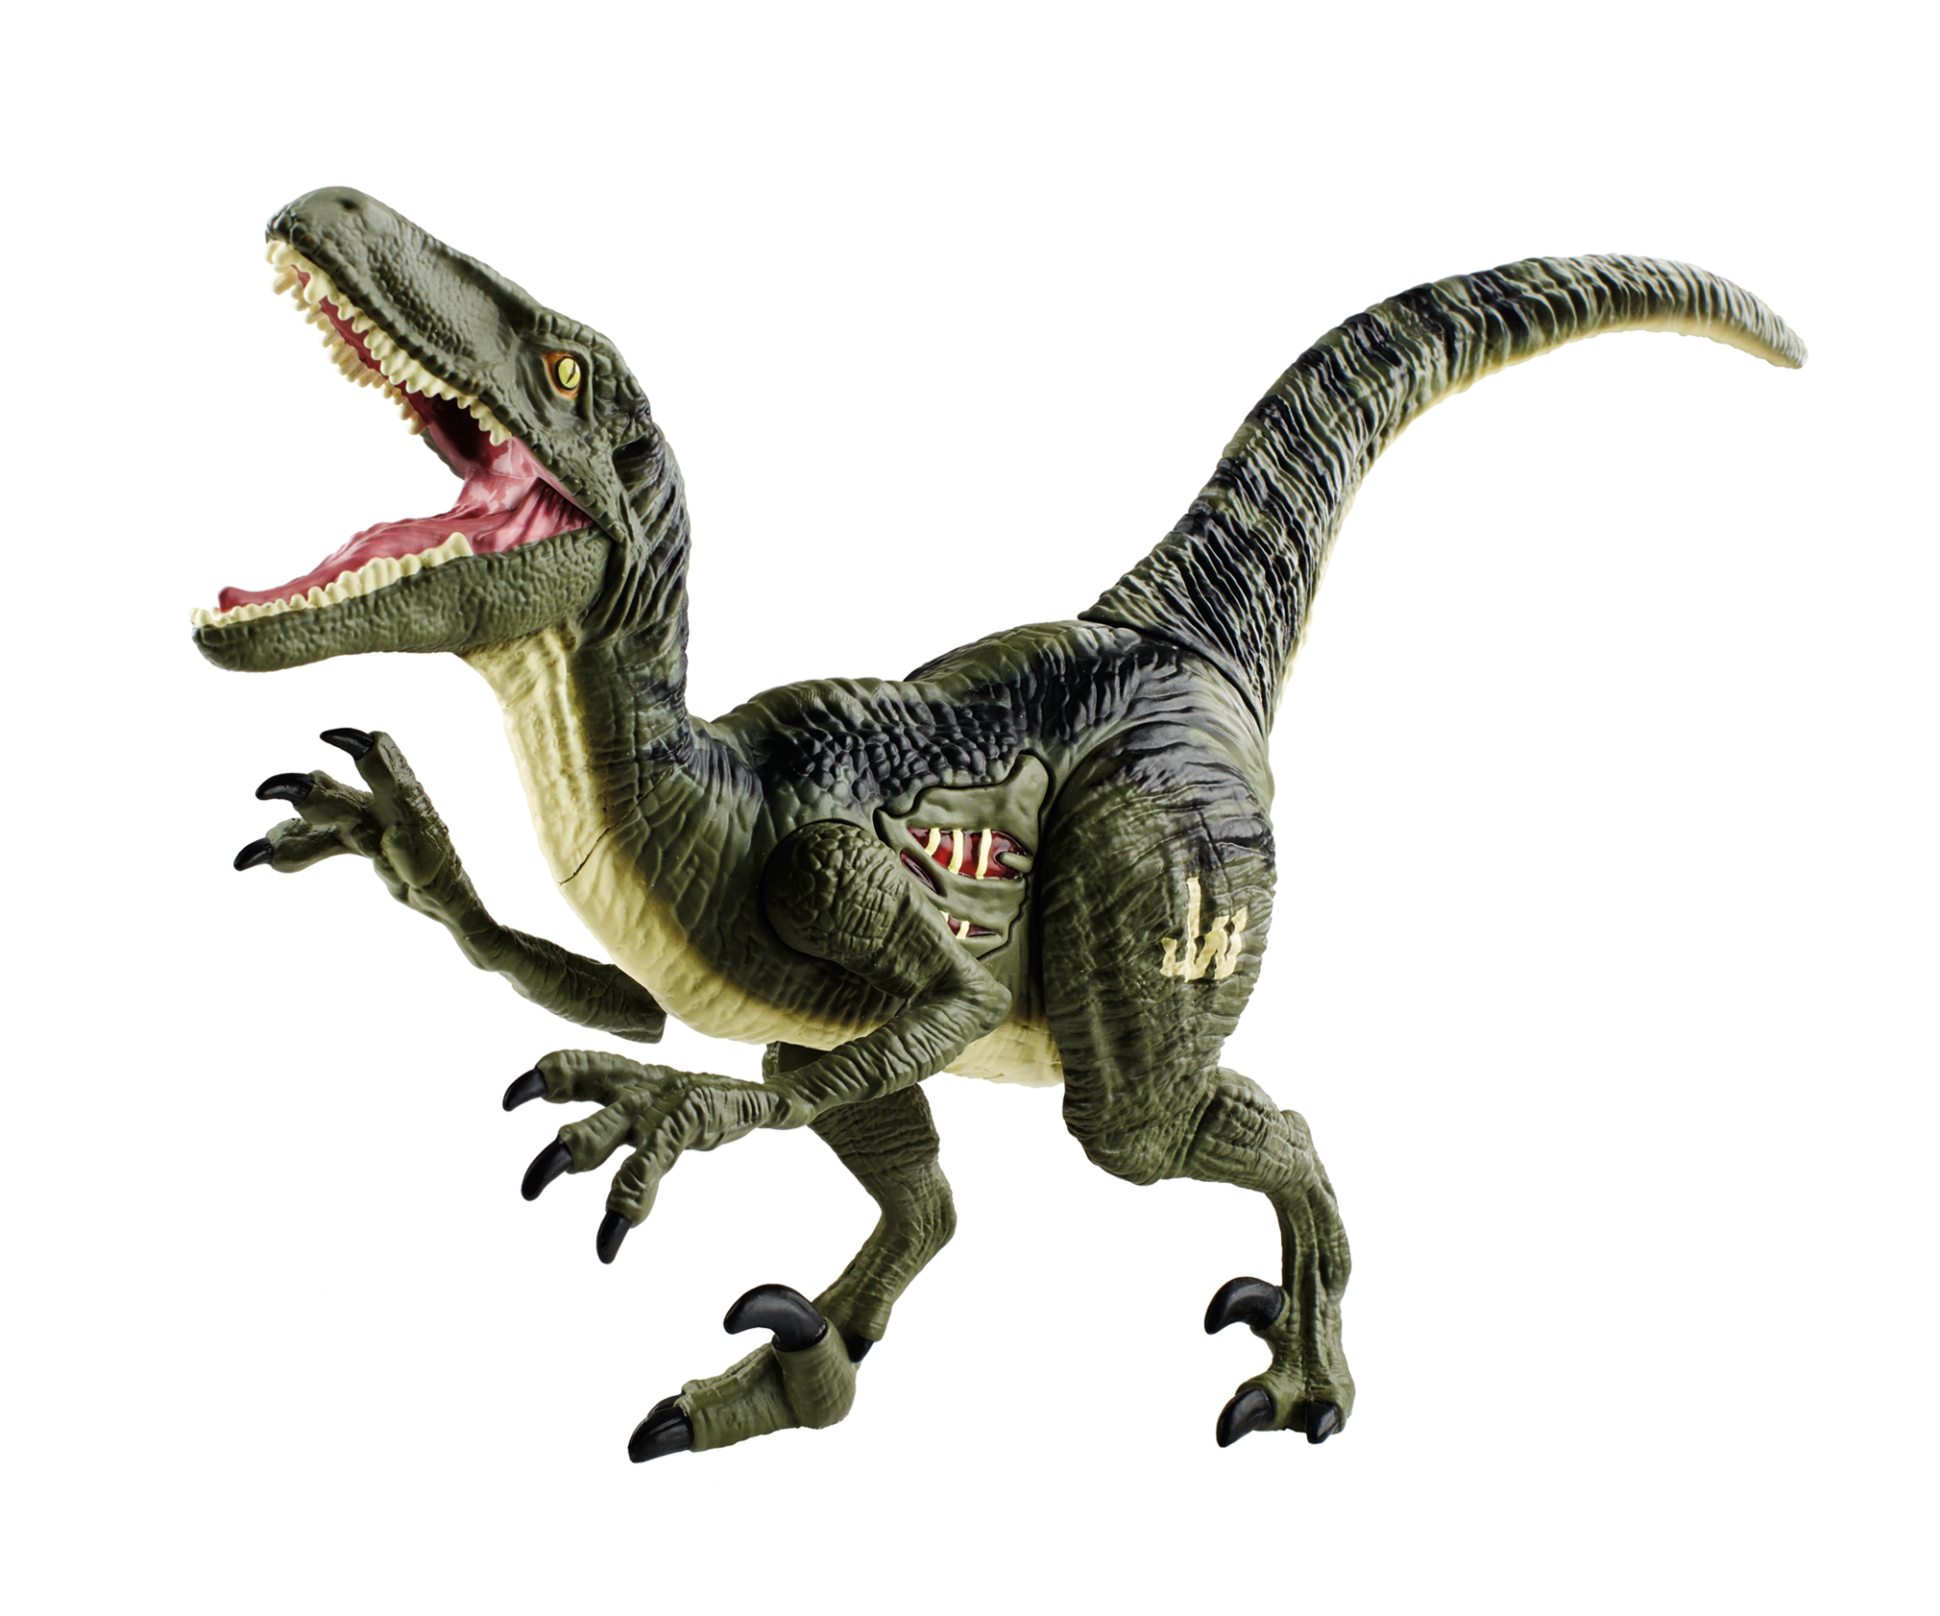 Download Dinosaurios Jurassic Park Png Png Gif Base In 2020 Jurassic World Jurassic World Dinosaurs New Jurassic World Jurassic world camión atrapa dinosaurios. download dinosaurios jurassic park png